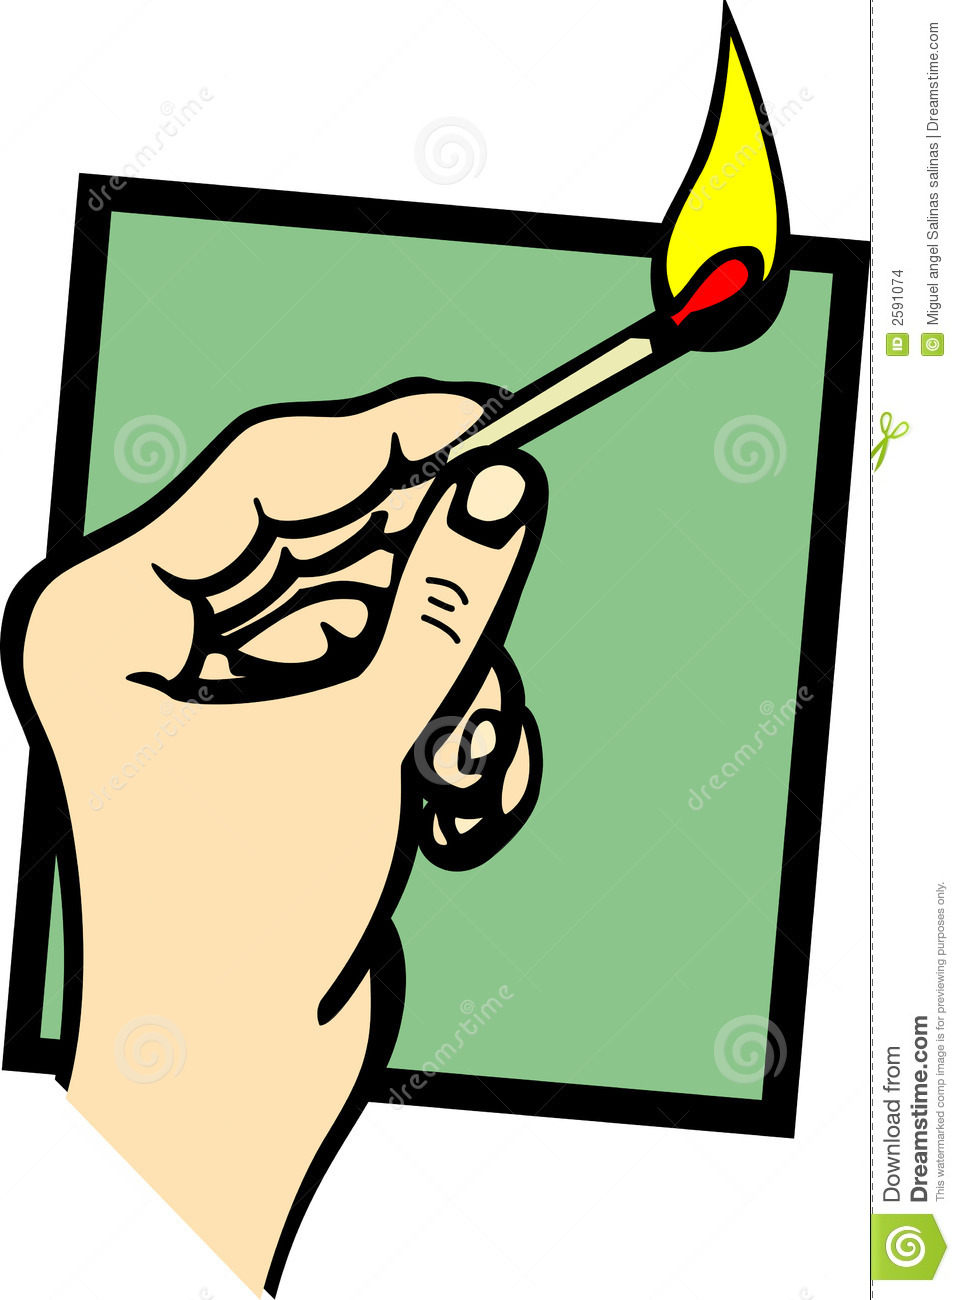 hot objects clipart - photo #7